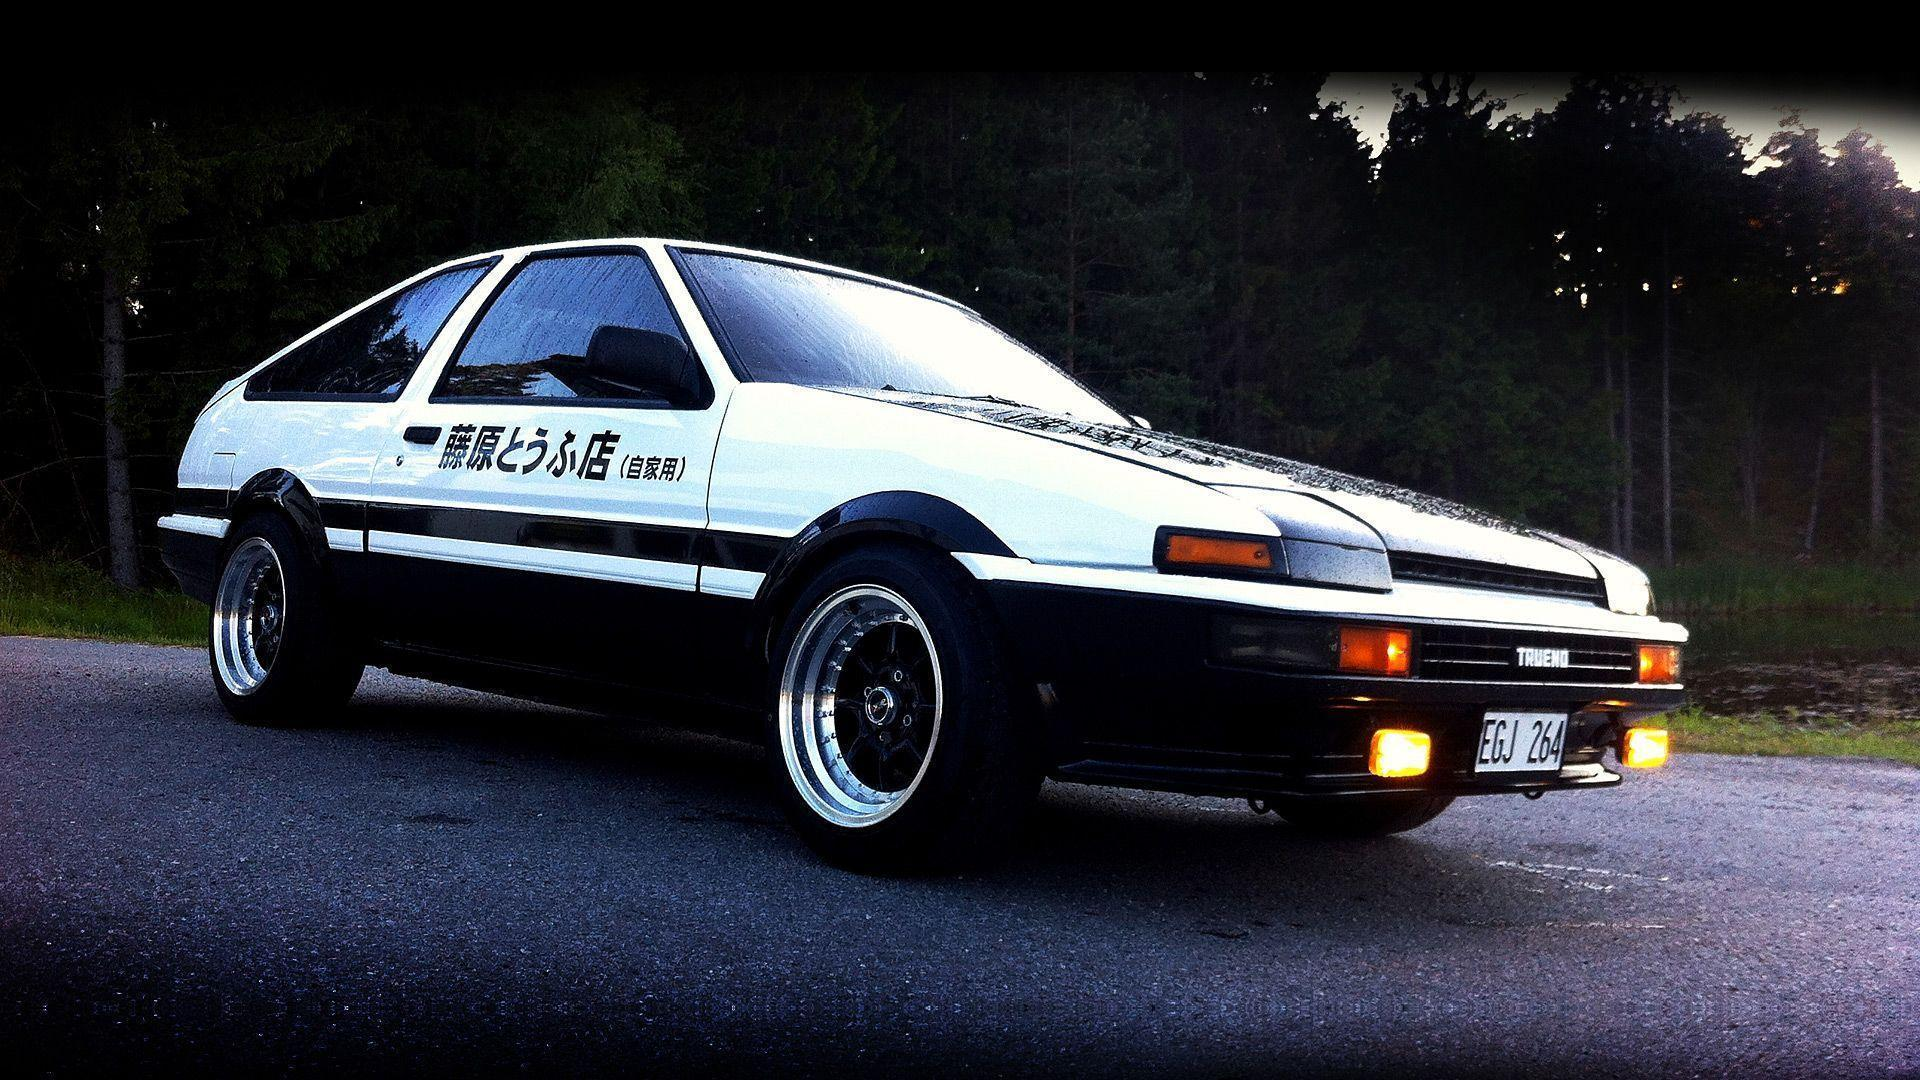 Ae86 Wallpapers   Top Ae86 Backgrounds   WallpaperAccess 1920x1080